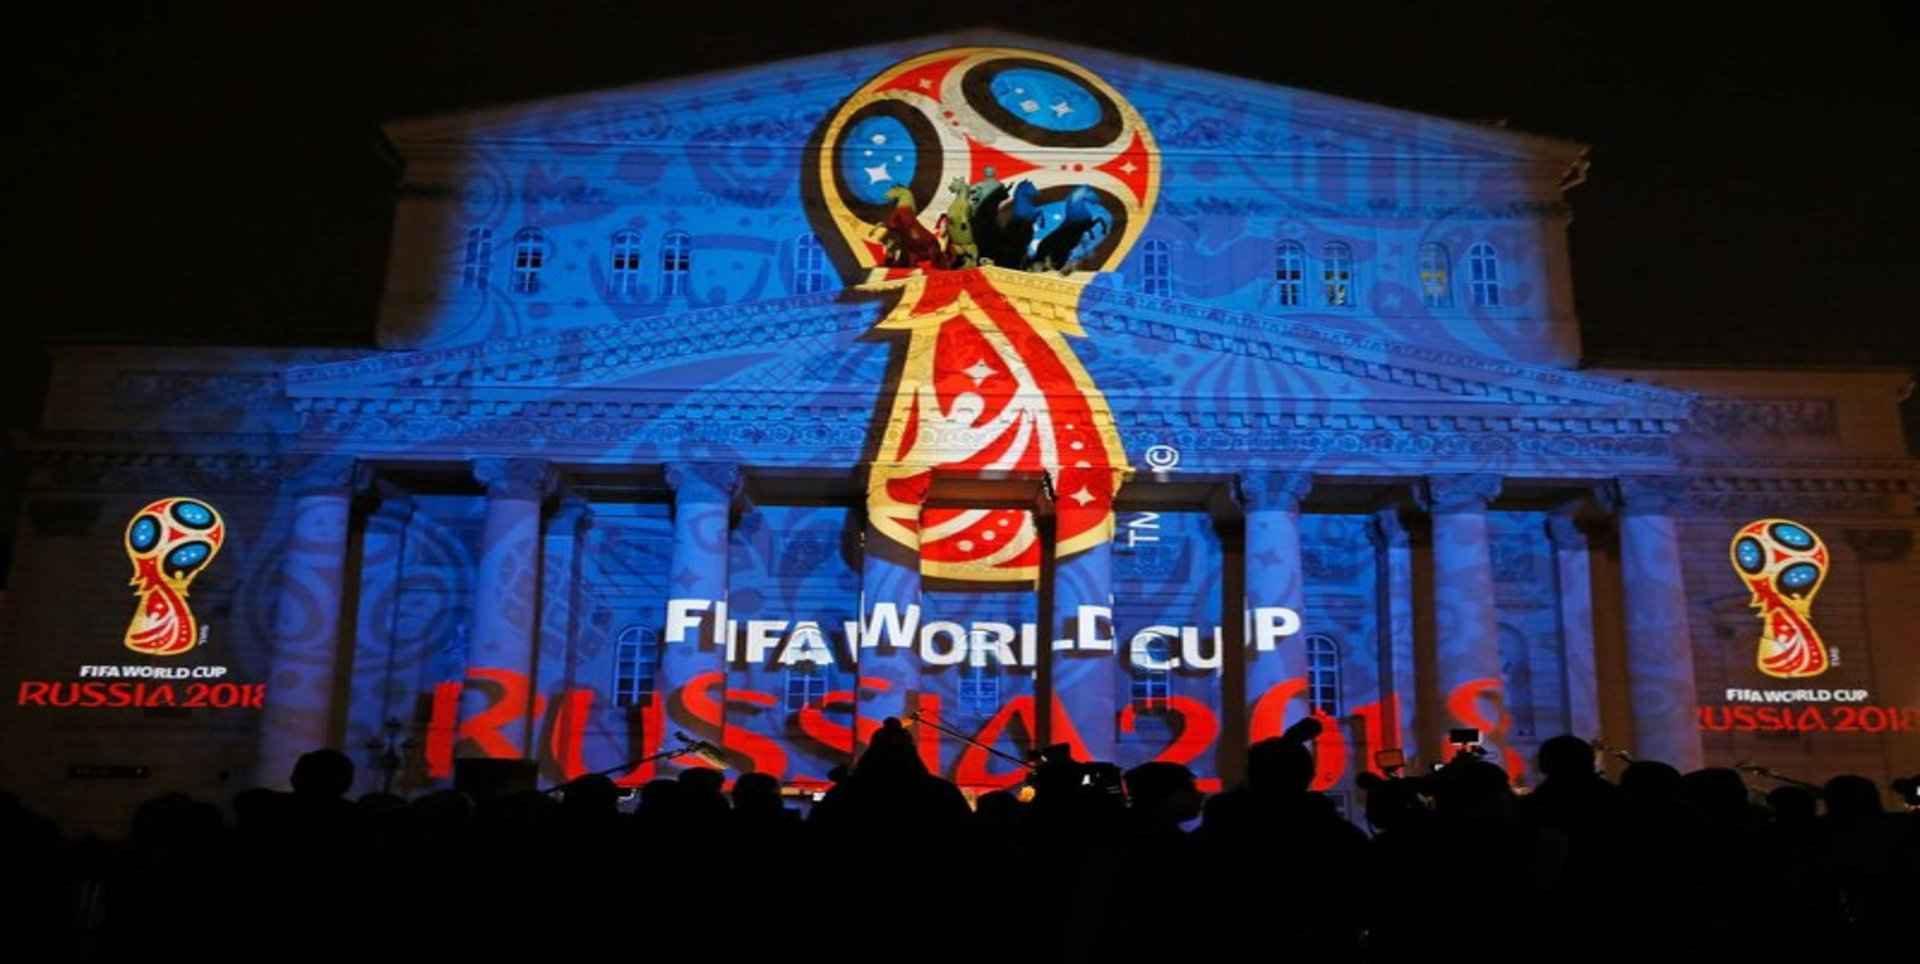 Mohamed Salah Confident To Play In FIFA World Cup 2018